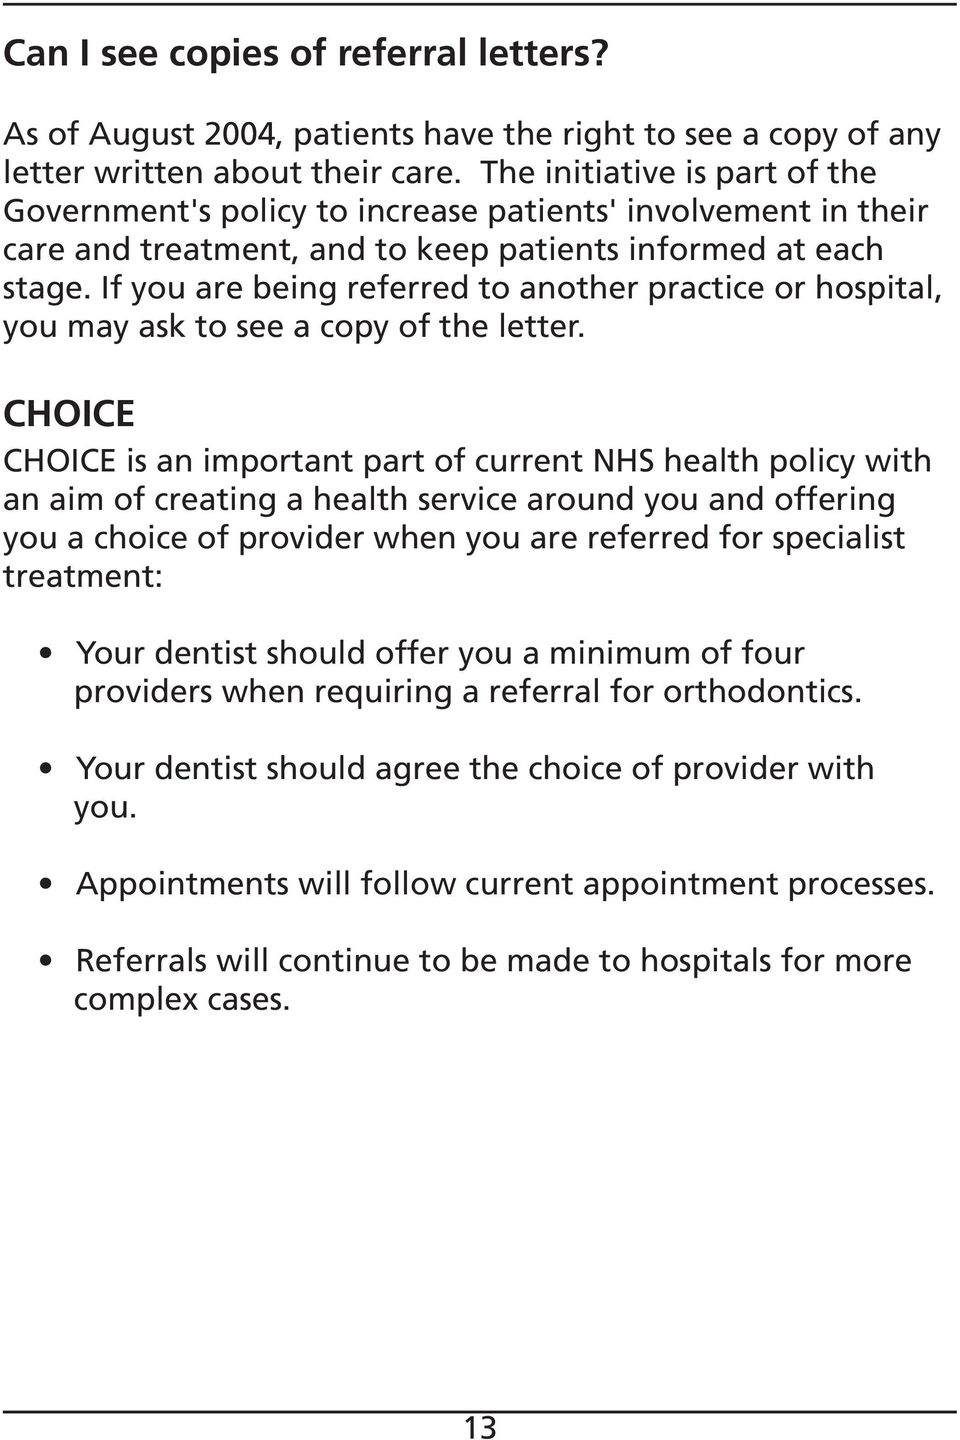 If you are being referred to another practice or hospital, you may ask to see a copy of the letter.